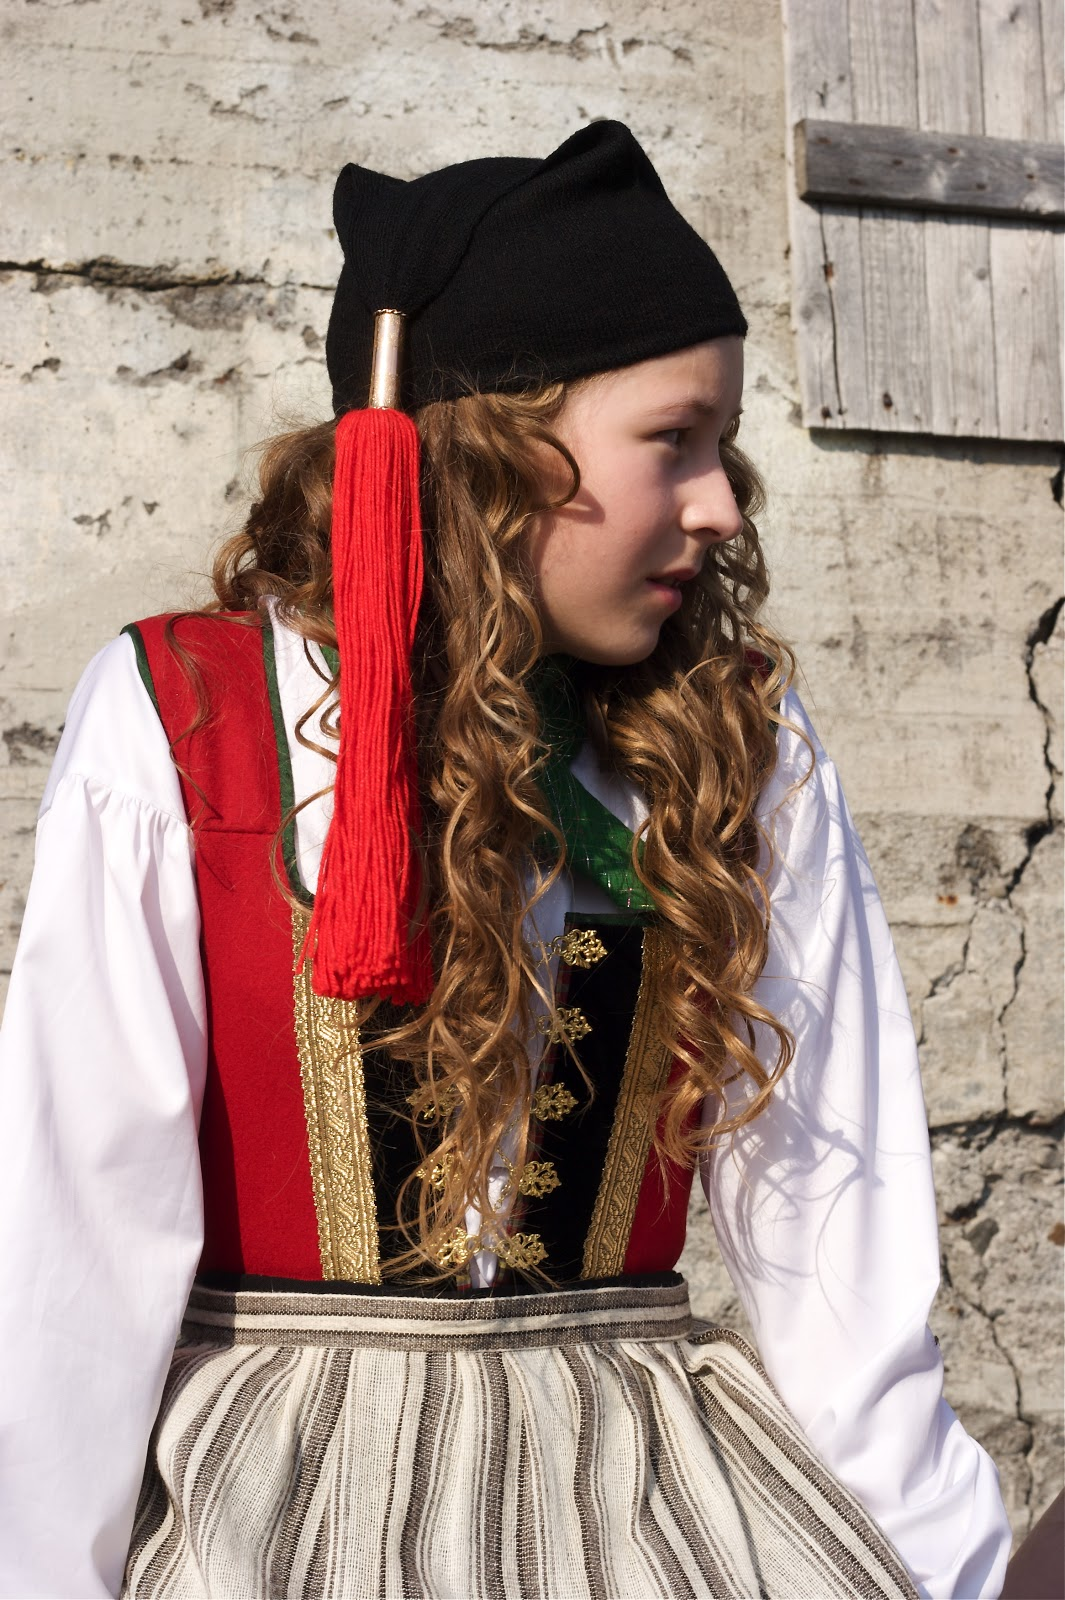 Twelfth century European fashion was simple and differed only in details from the clothing of the preceding centuries. Men wore knee-length tunics for most activities, and men of the upper classes wore long tunics, with hose and mantle or cloaks. Women wore long tunics or gowns.